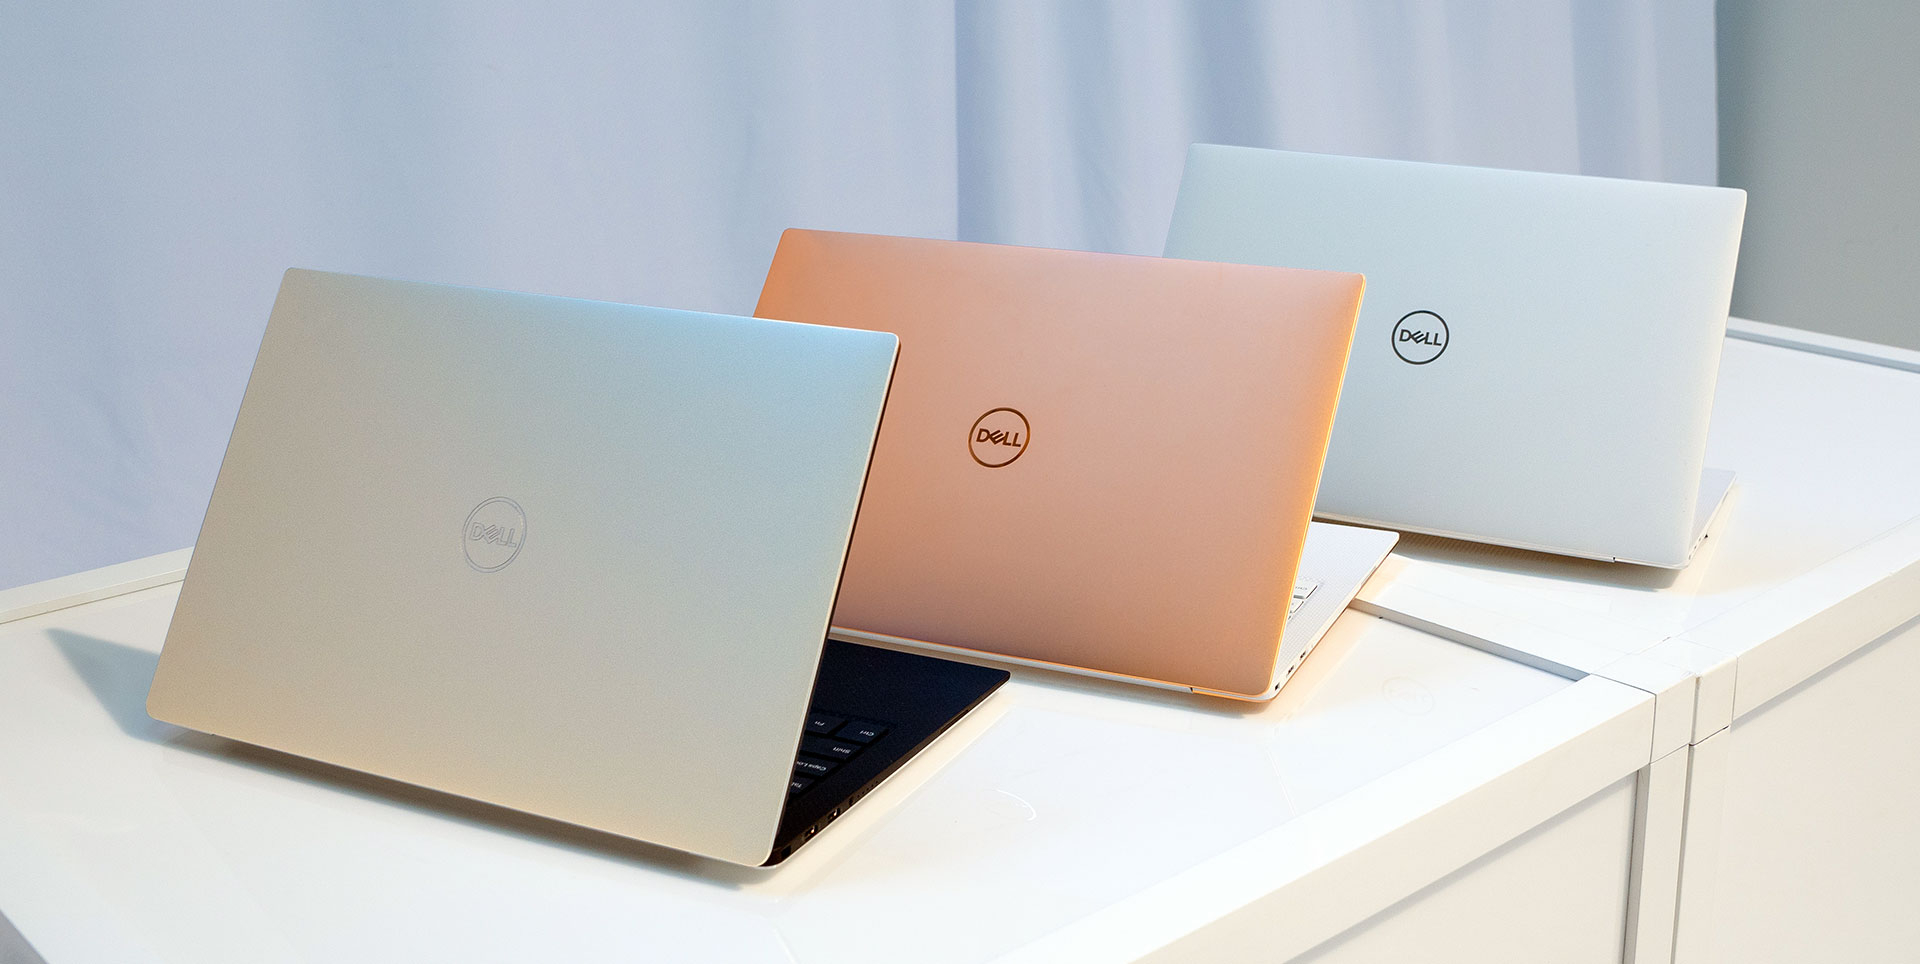 Dell XPS 13 9380 2019 - reviews, what's changed from the XPS